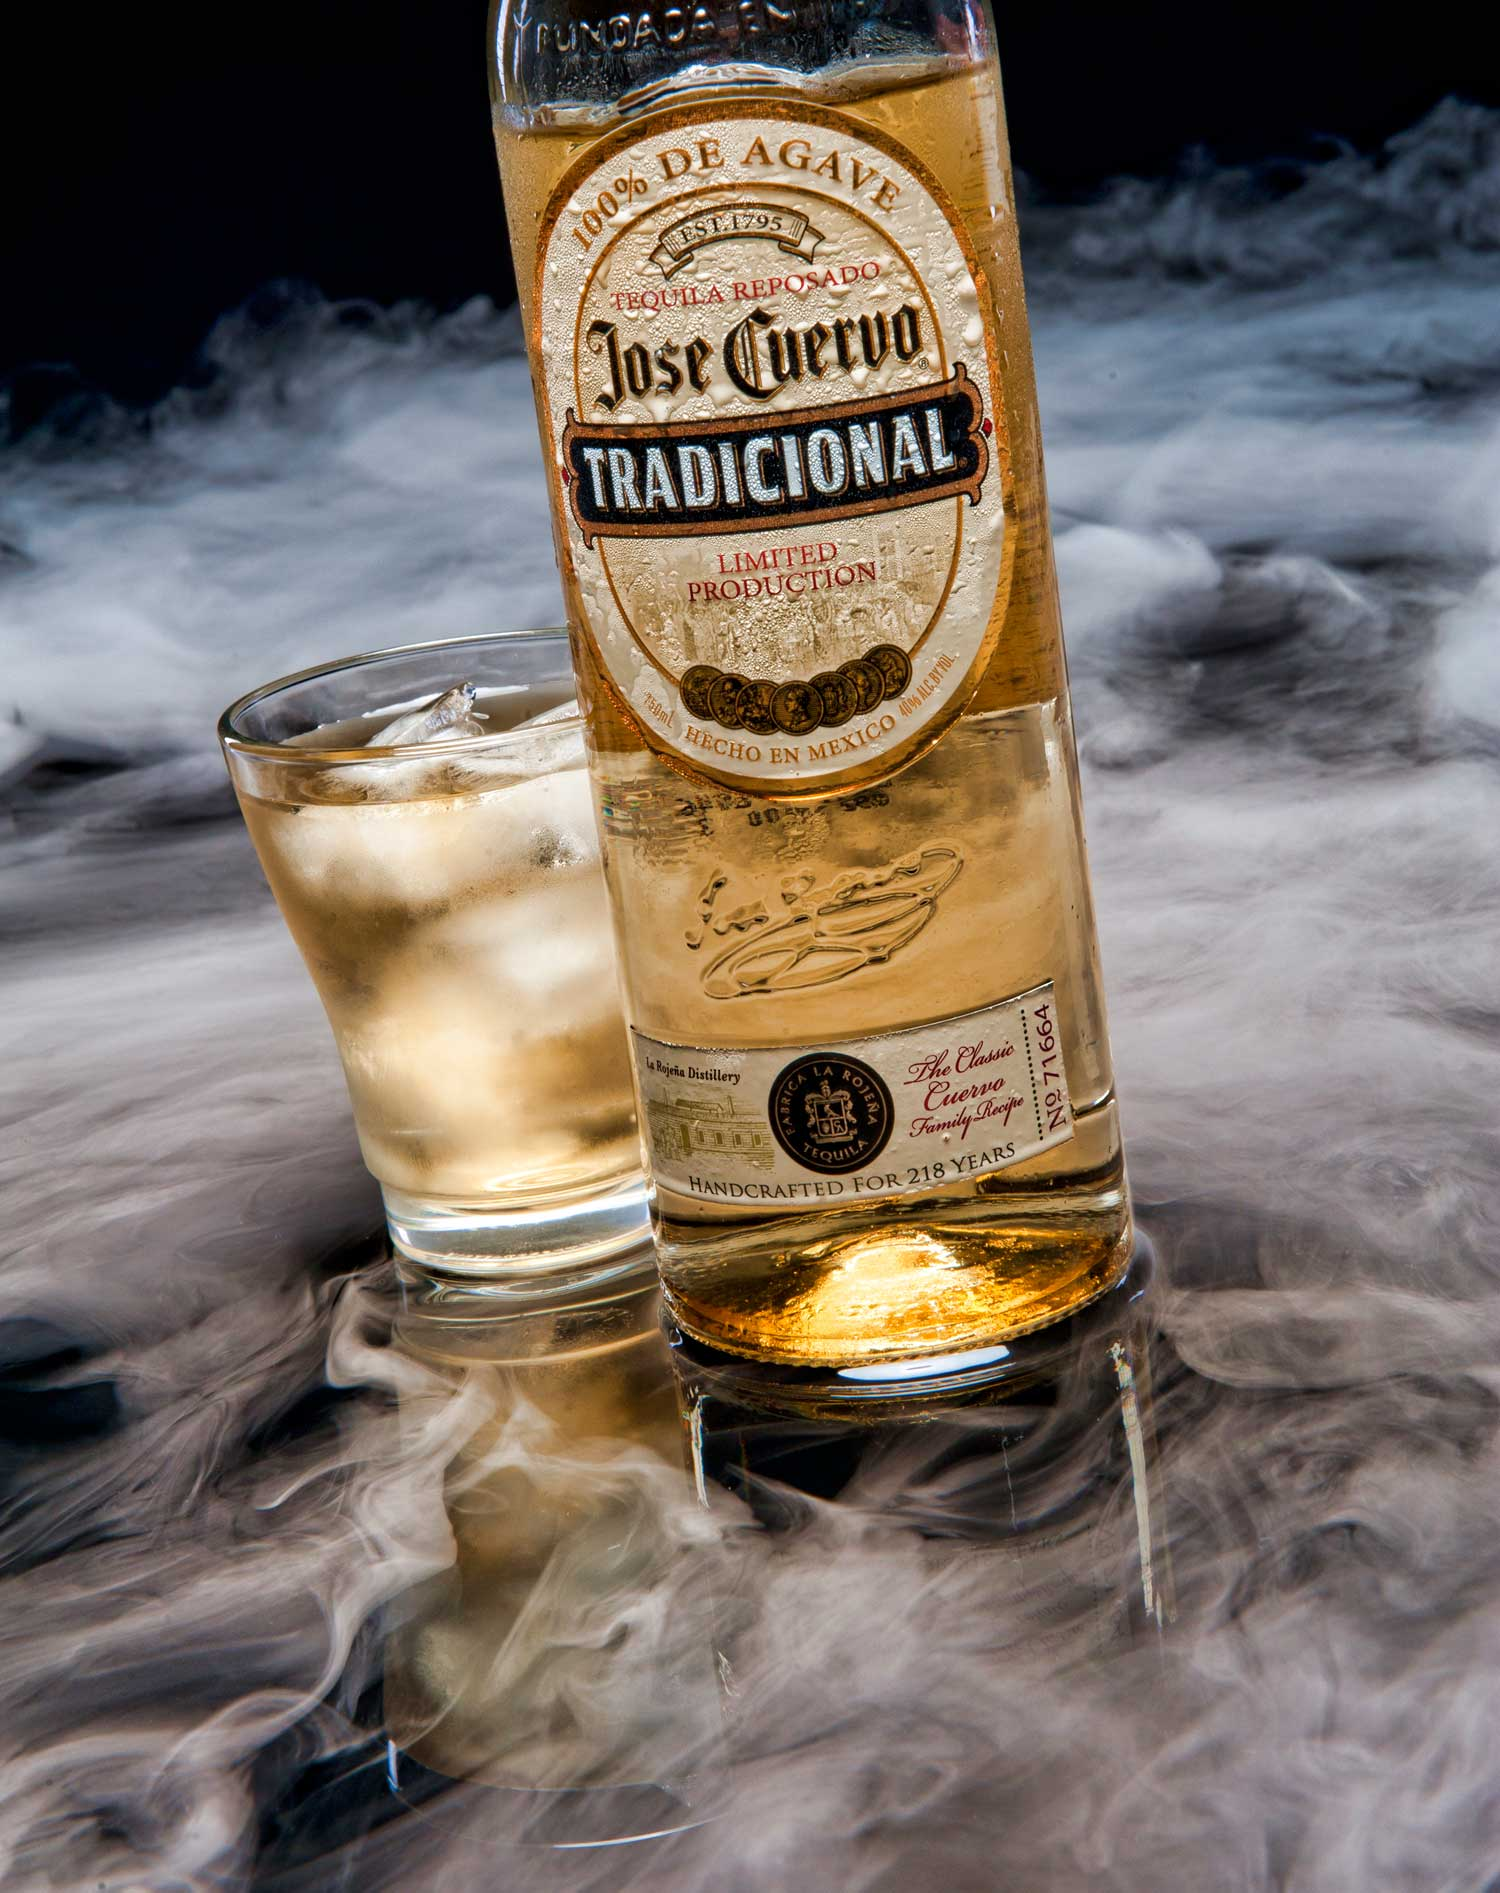 jose cuervo tradicional with shot glass